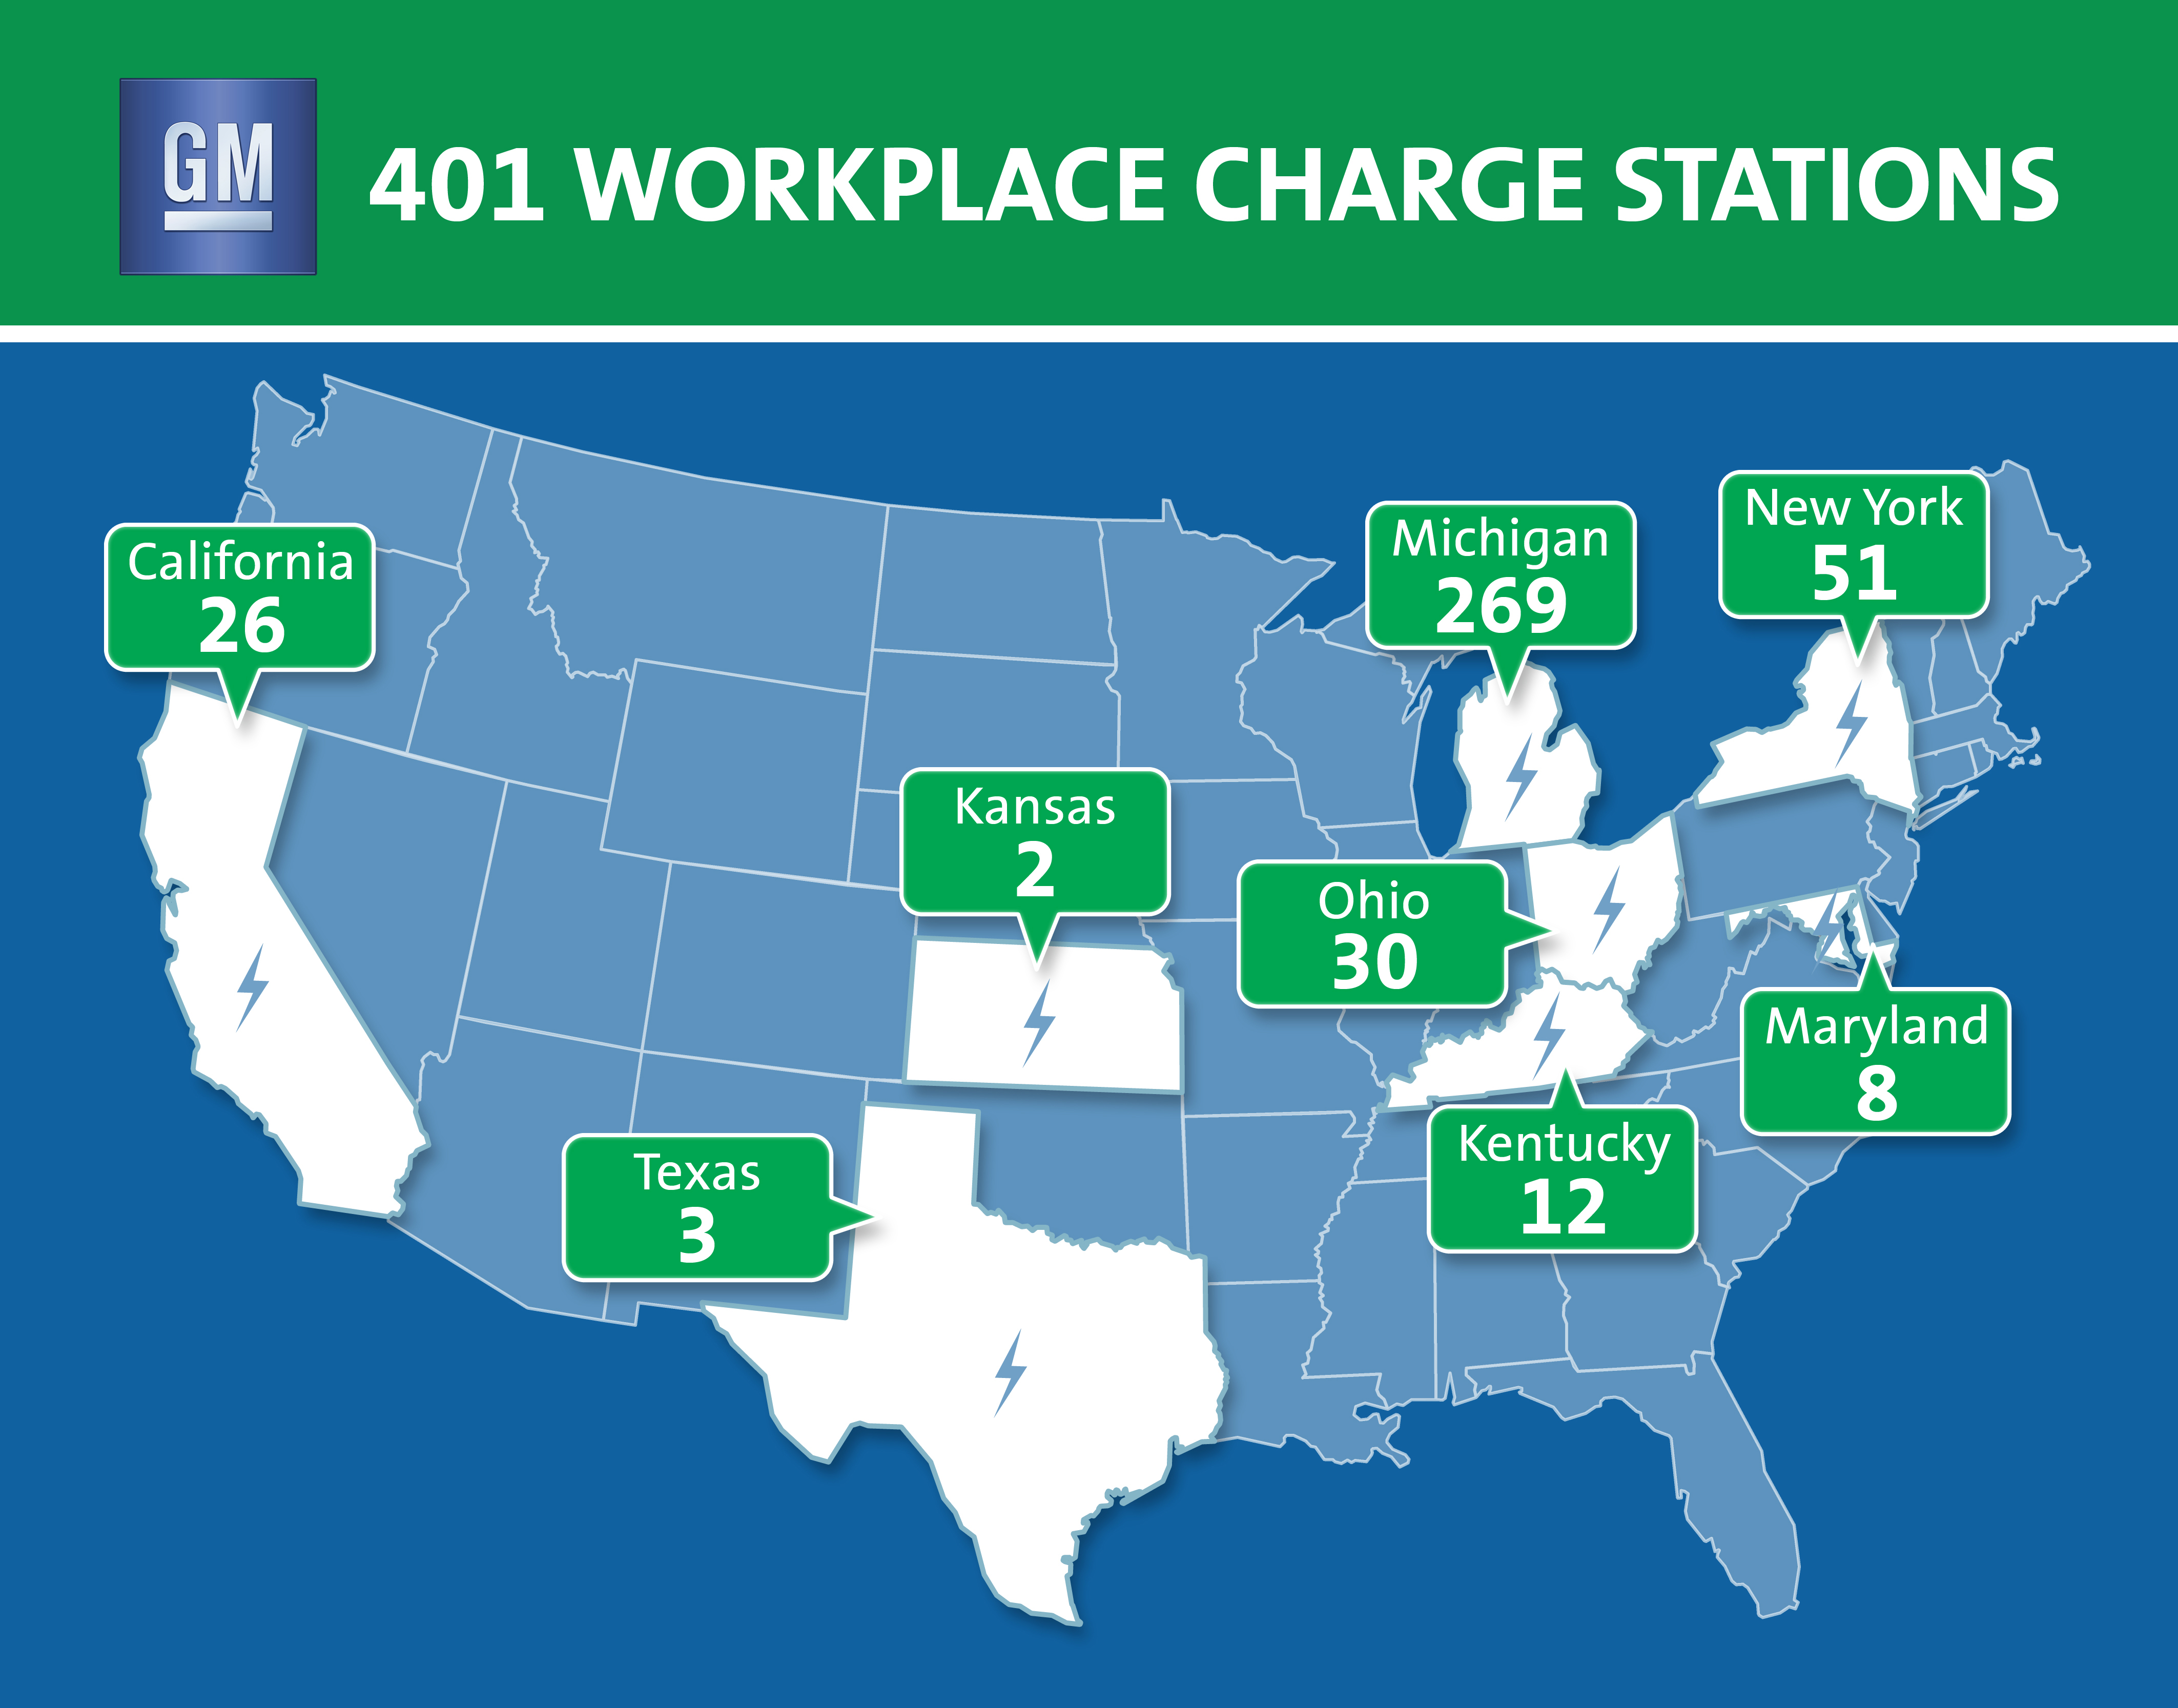 GM Surpasses 400 EV Charge Stations at US Facilities